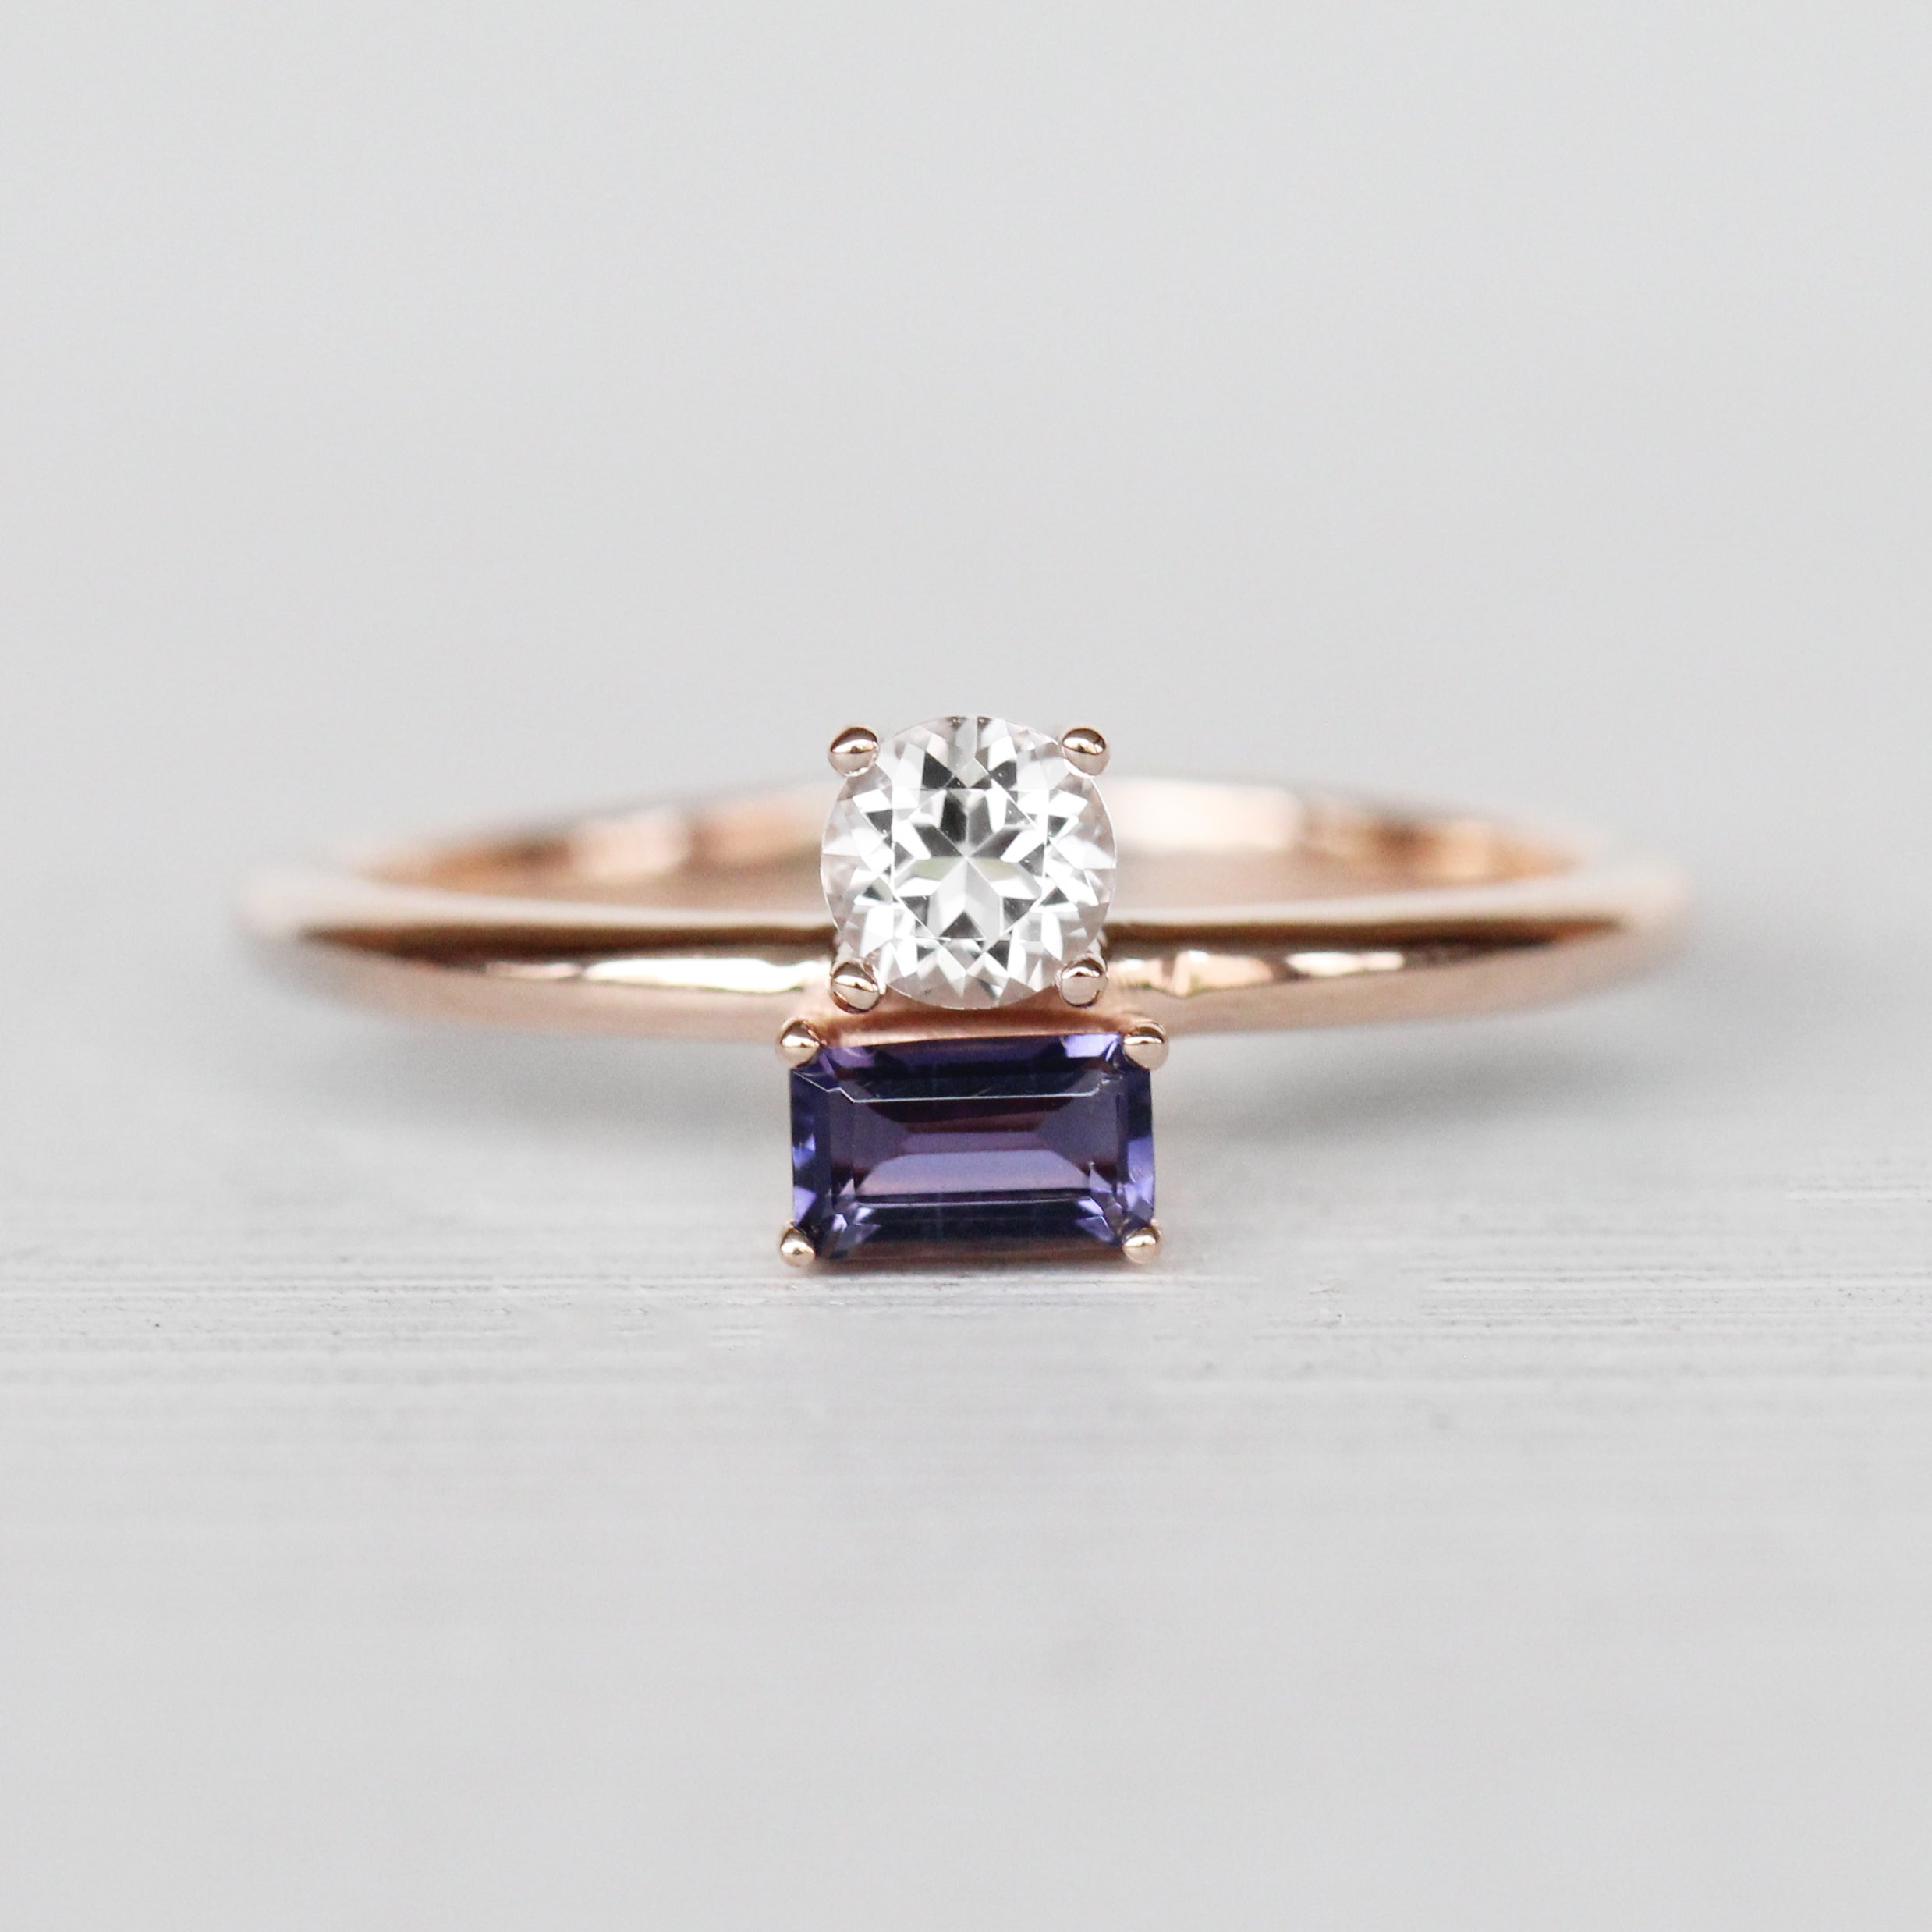 Darley Topaz and Iolite Asymmetrical Double Ring in 10k Rose Gold - Ready to Size and Ship - Celestial Diamonds ® by Midwinter Co.